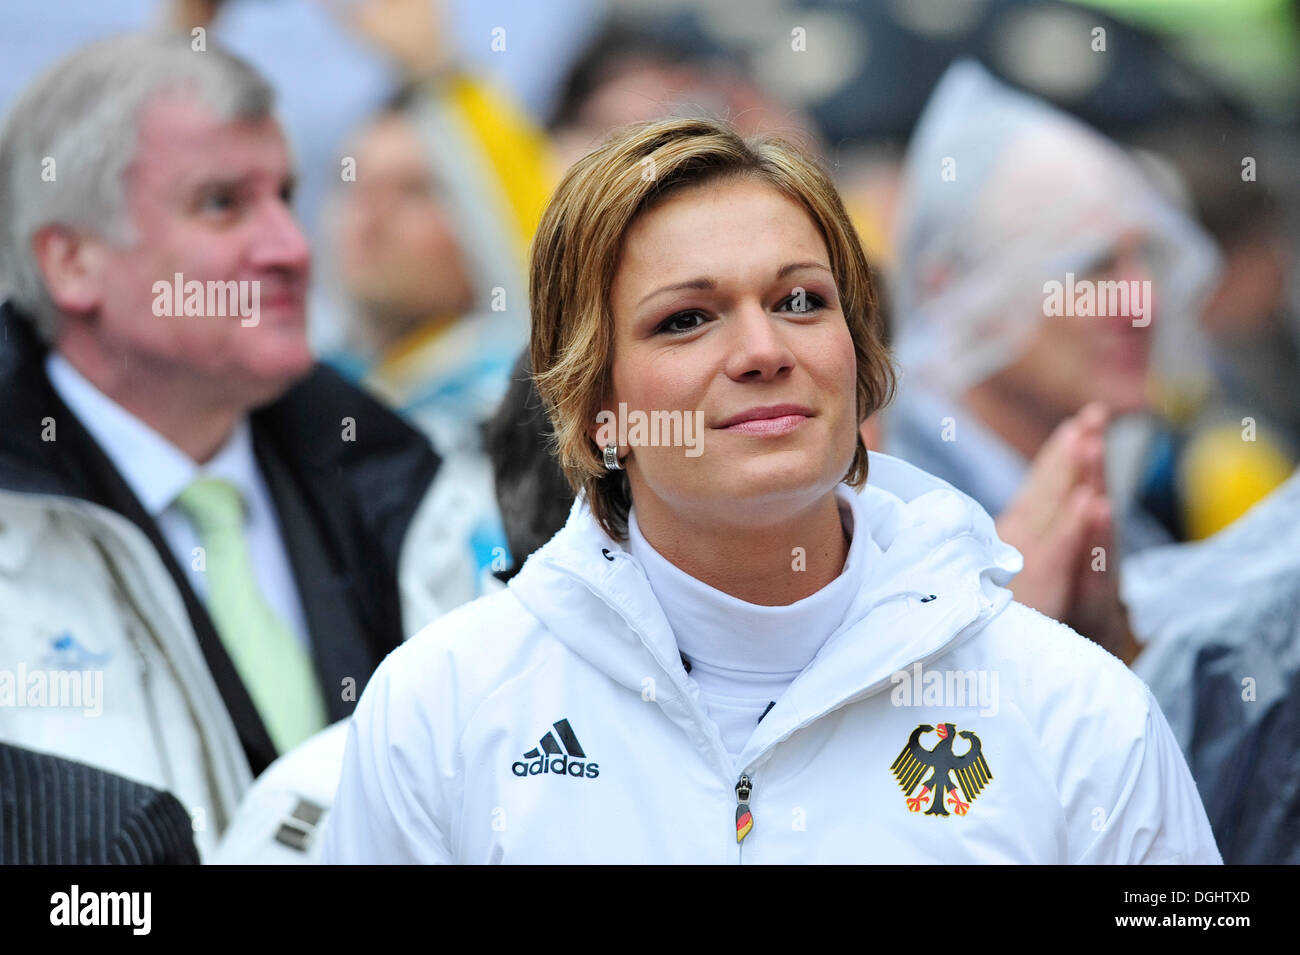 Maria Riesch, ski racer, double Olympic gold medalist, at the reception of the German Olympic participants 2010, Munich, Bavaria - Stock Image